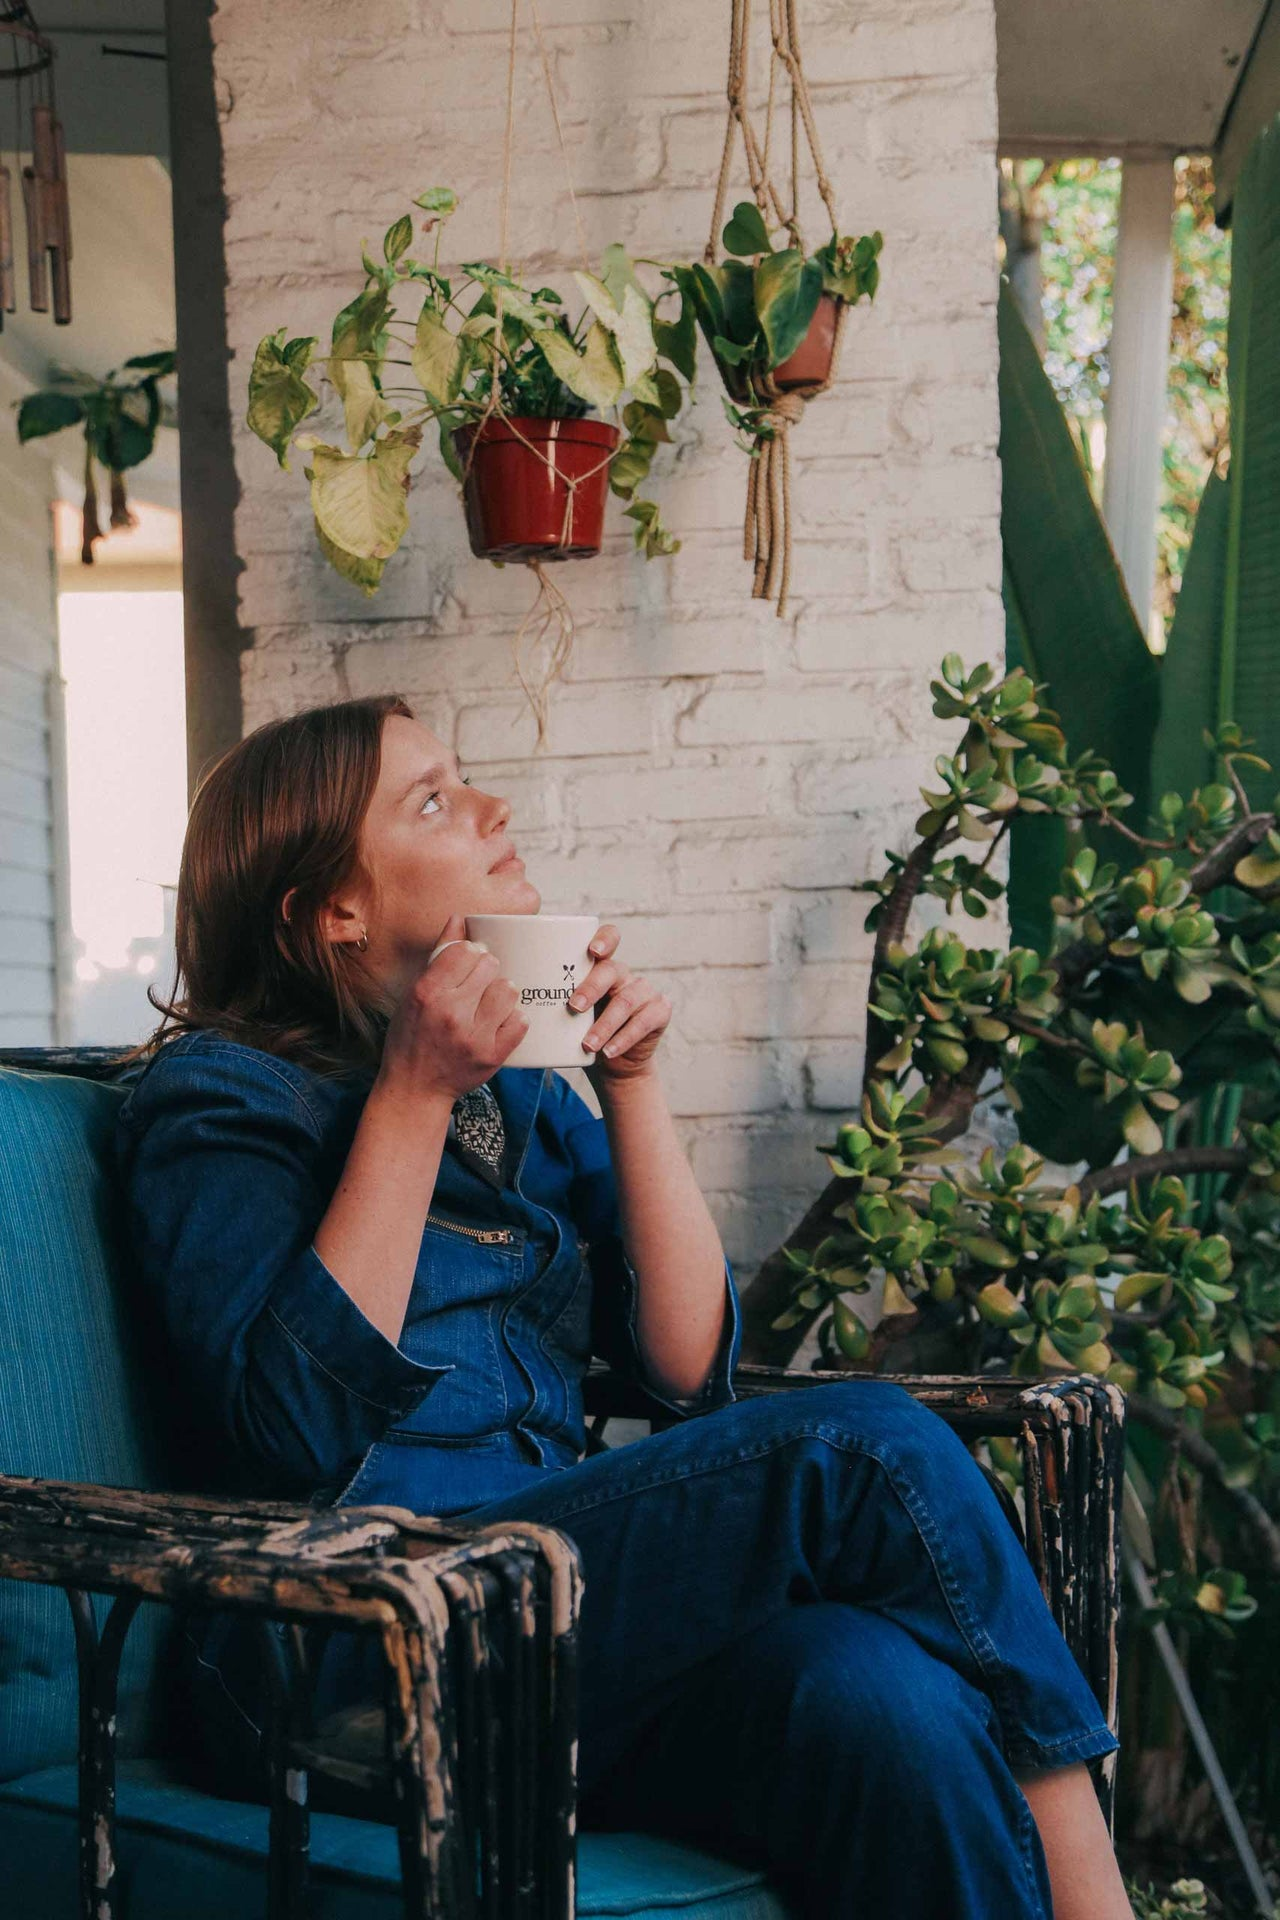 person drinking coffee while sitting in chair and gazing at hanging plants